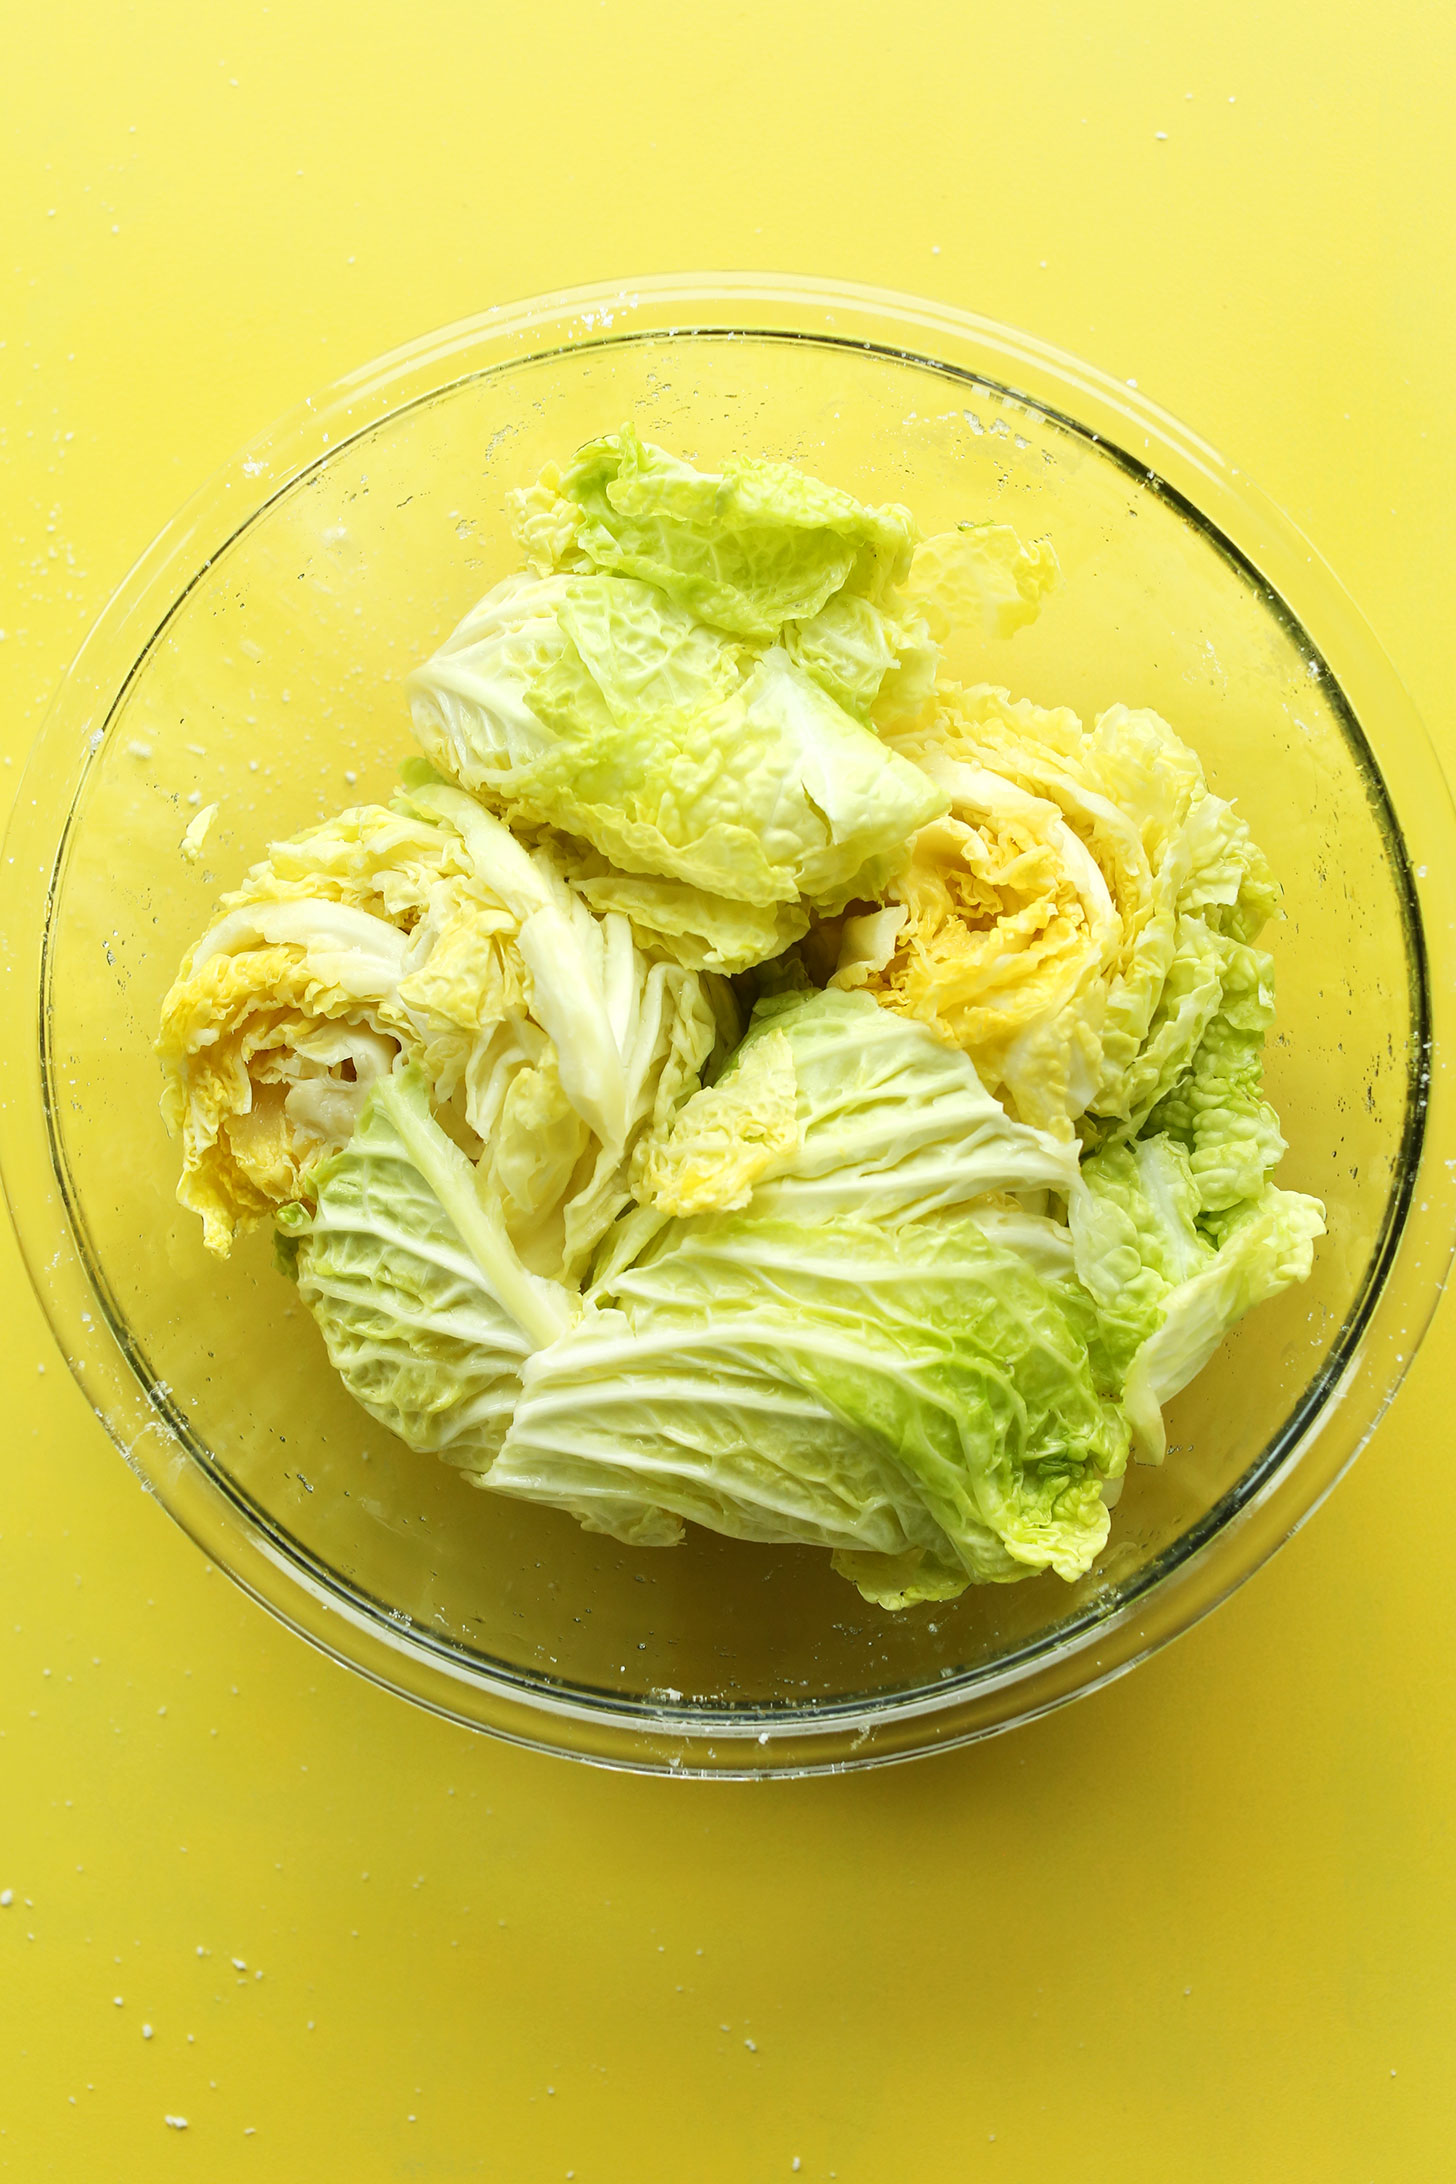 Bowl of napa cabbage for making our easy vegan kimchi recipe